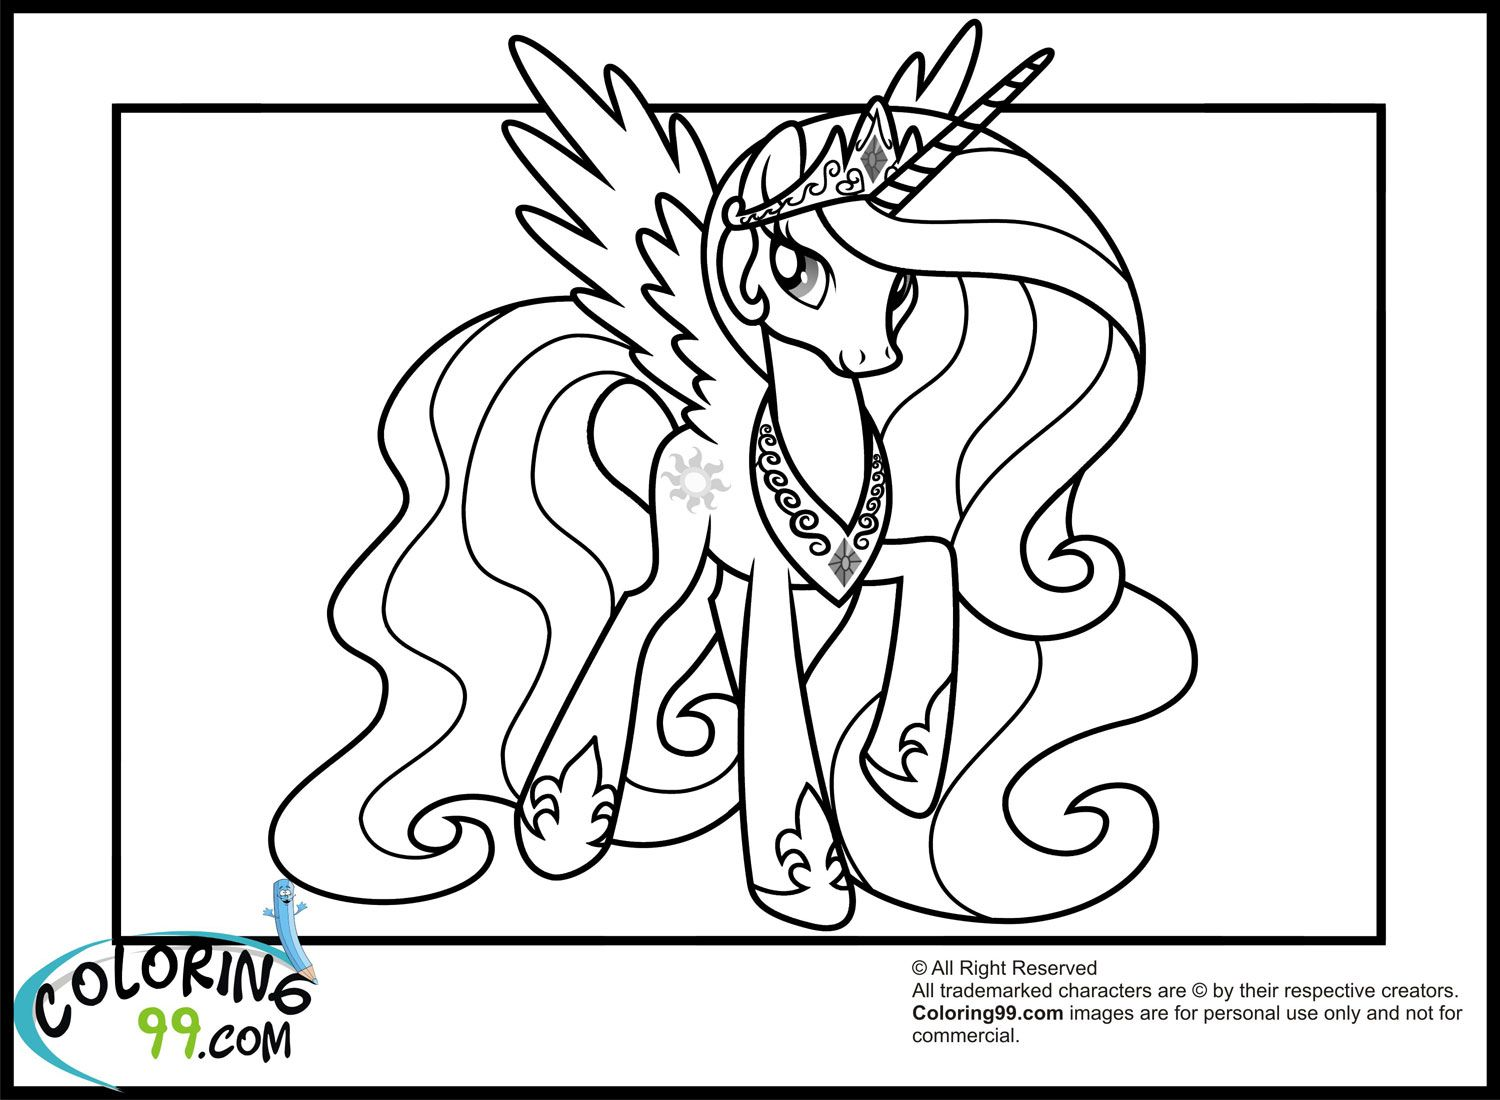 Little princess coloring pages - Princess Celestia My Little Pony Coloring Pages Pinterest A001abbd5ace764ca1454383b9b639f7 545076361122445351 Little Princess Pictures Coloring Pages